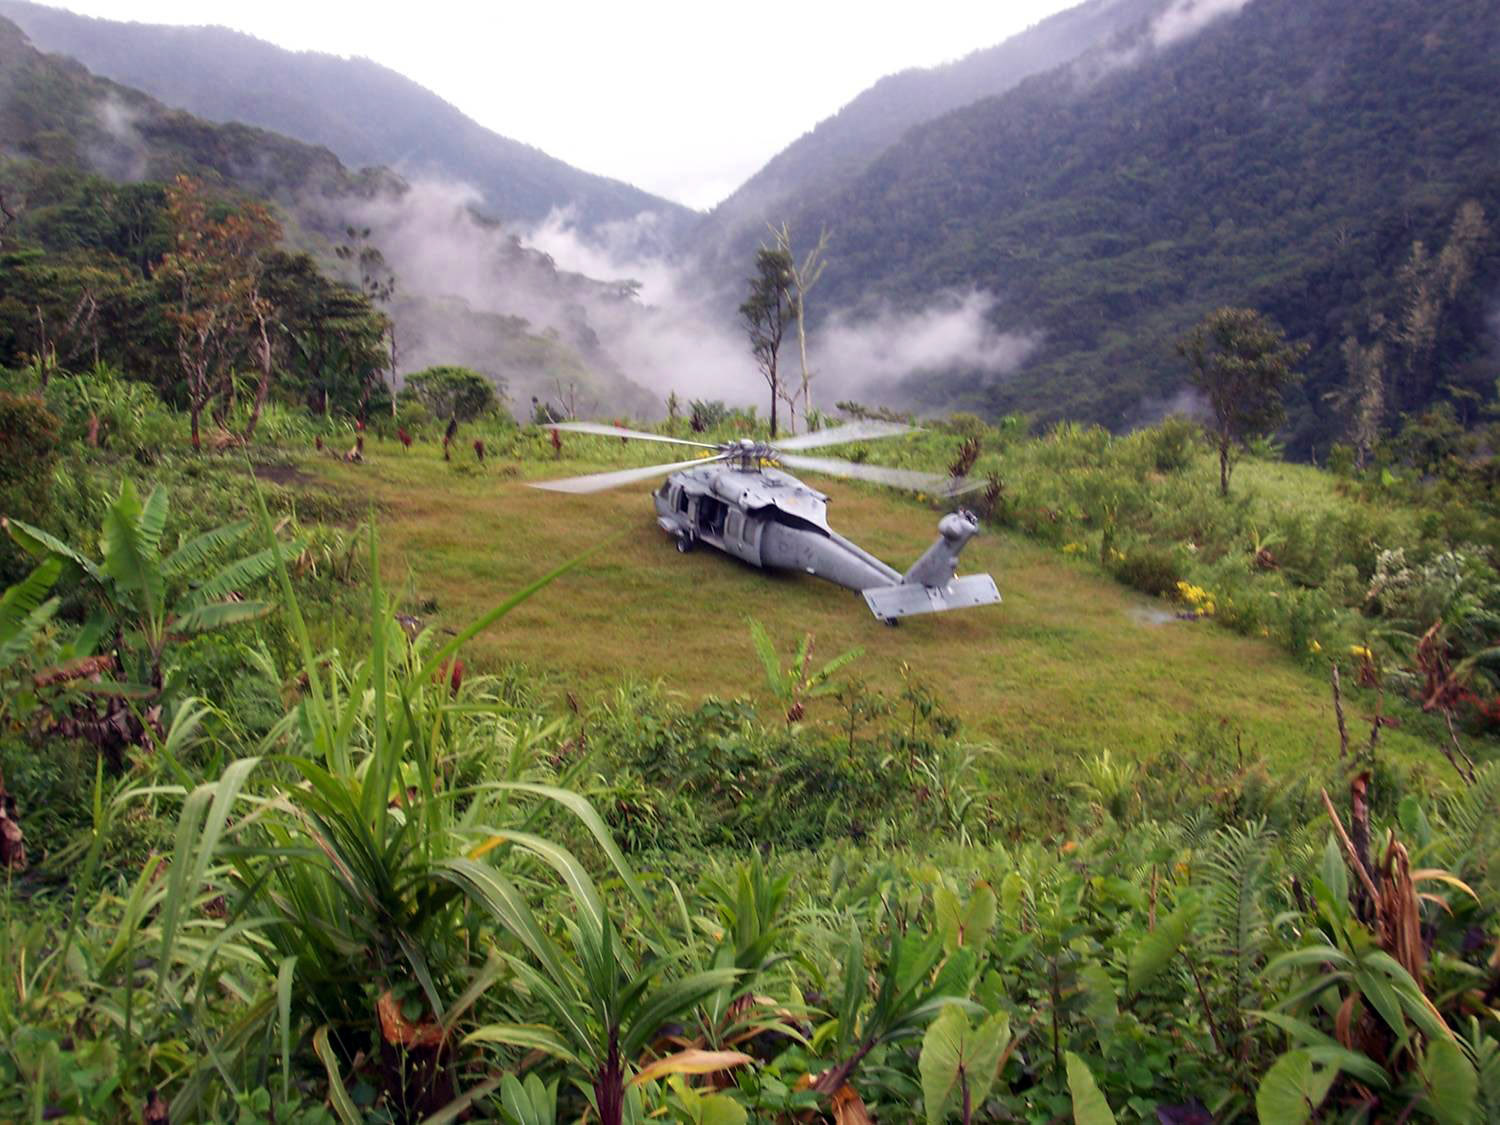 new us helicopter with File Us Navy 080808 N 3591m 001 An Mh 60s Seahawk Helicopter From Helicopter  Bat Support Squadron  Hs  21  Based In San Diego  Lands Near Alola Village In The Owen Stanley Mountain Range In Papua New Guinea To Evacuate Australian on File German Eurocopter Tiger  2011 in addition SH 187 stealth helicopter furthermore 20892151028 likewise Dd62 Katrina furthermore H 19 walk1.